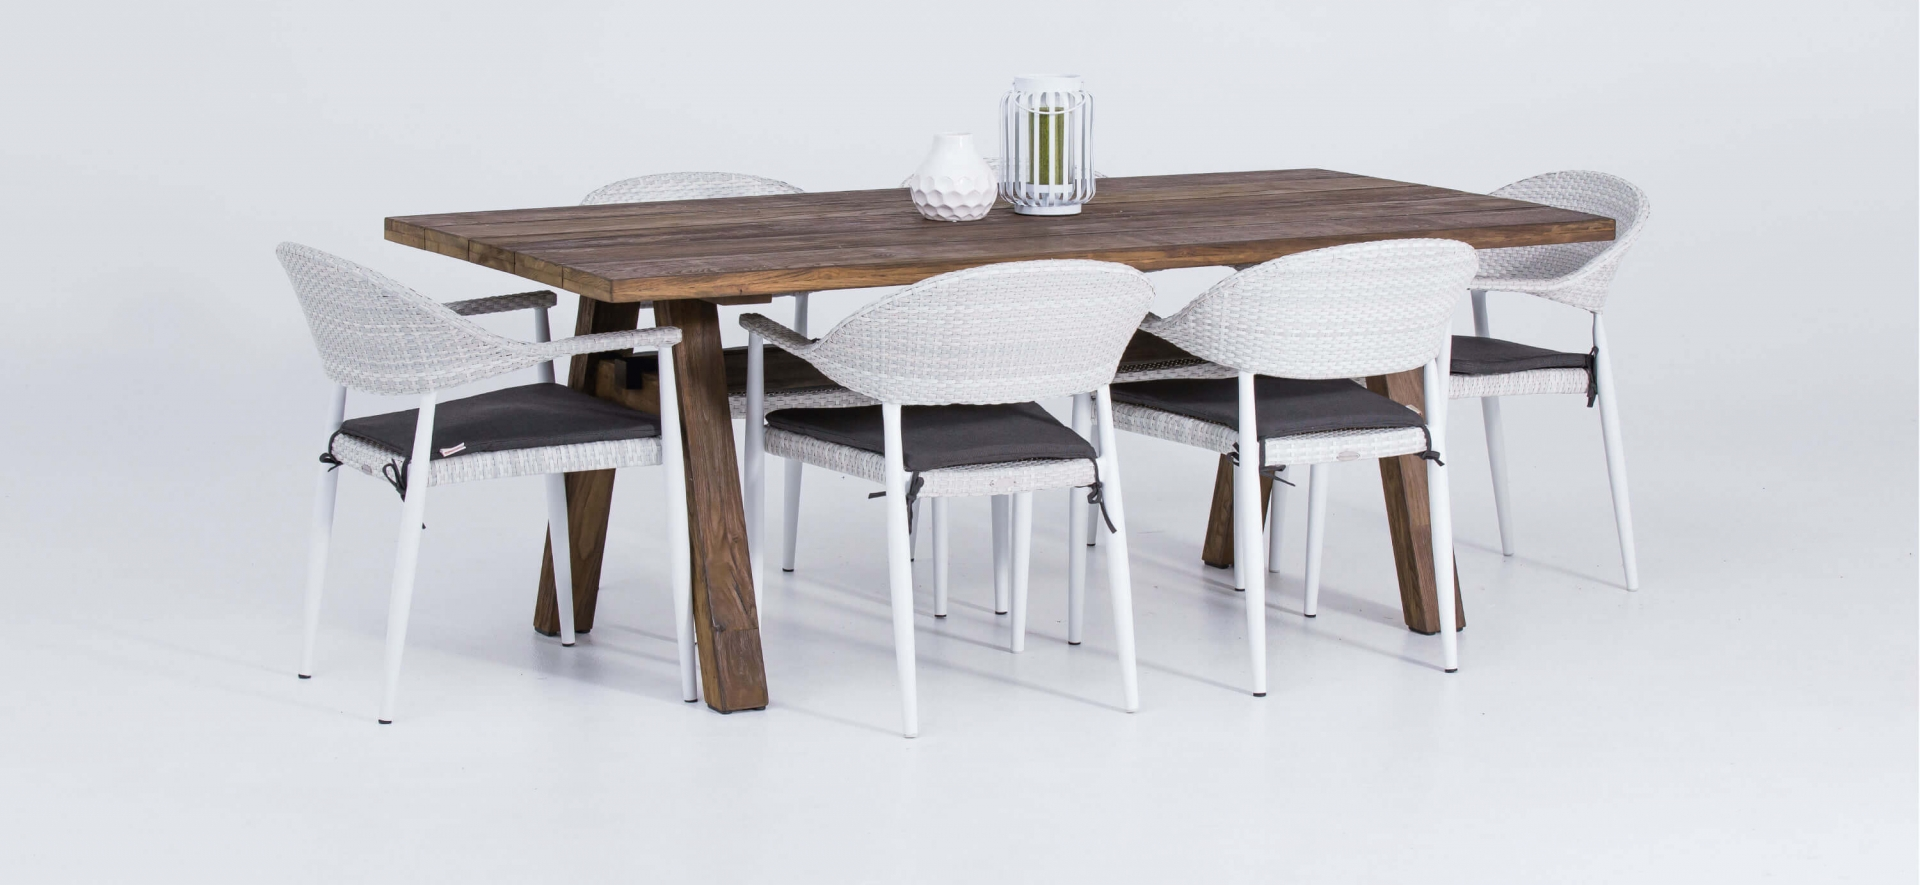 Outdoor Teak 2m Table and White Rio Chairs